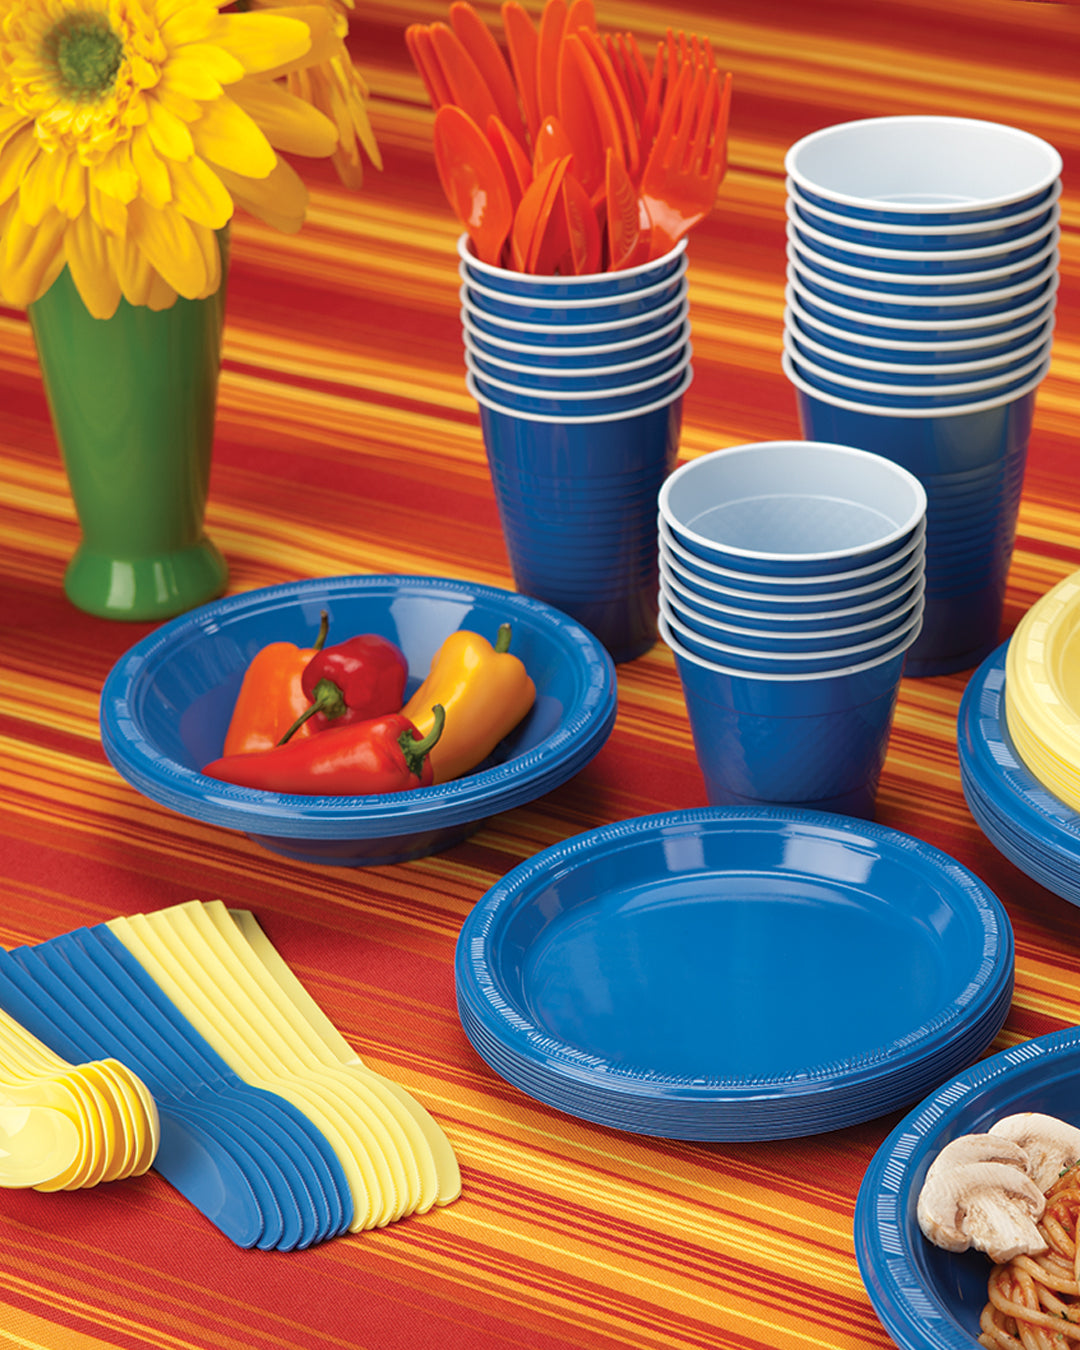 Plastic Solid Color Party Tableware<br/>Size Options: 10.25inch Plate, 9inch Plate, 7inch Plate, 15oz Bowl, 18oz Cup, 12oz Cup, 9oz Cup, 10.25inch Compartment Plate